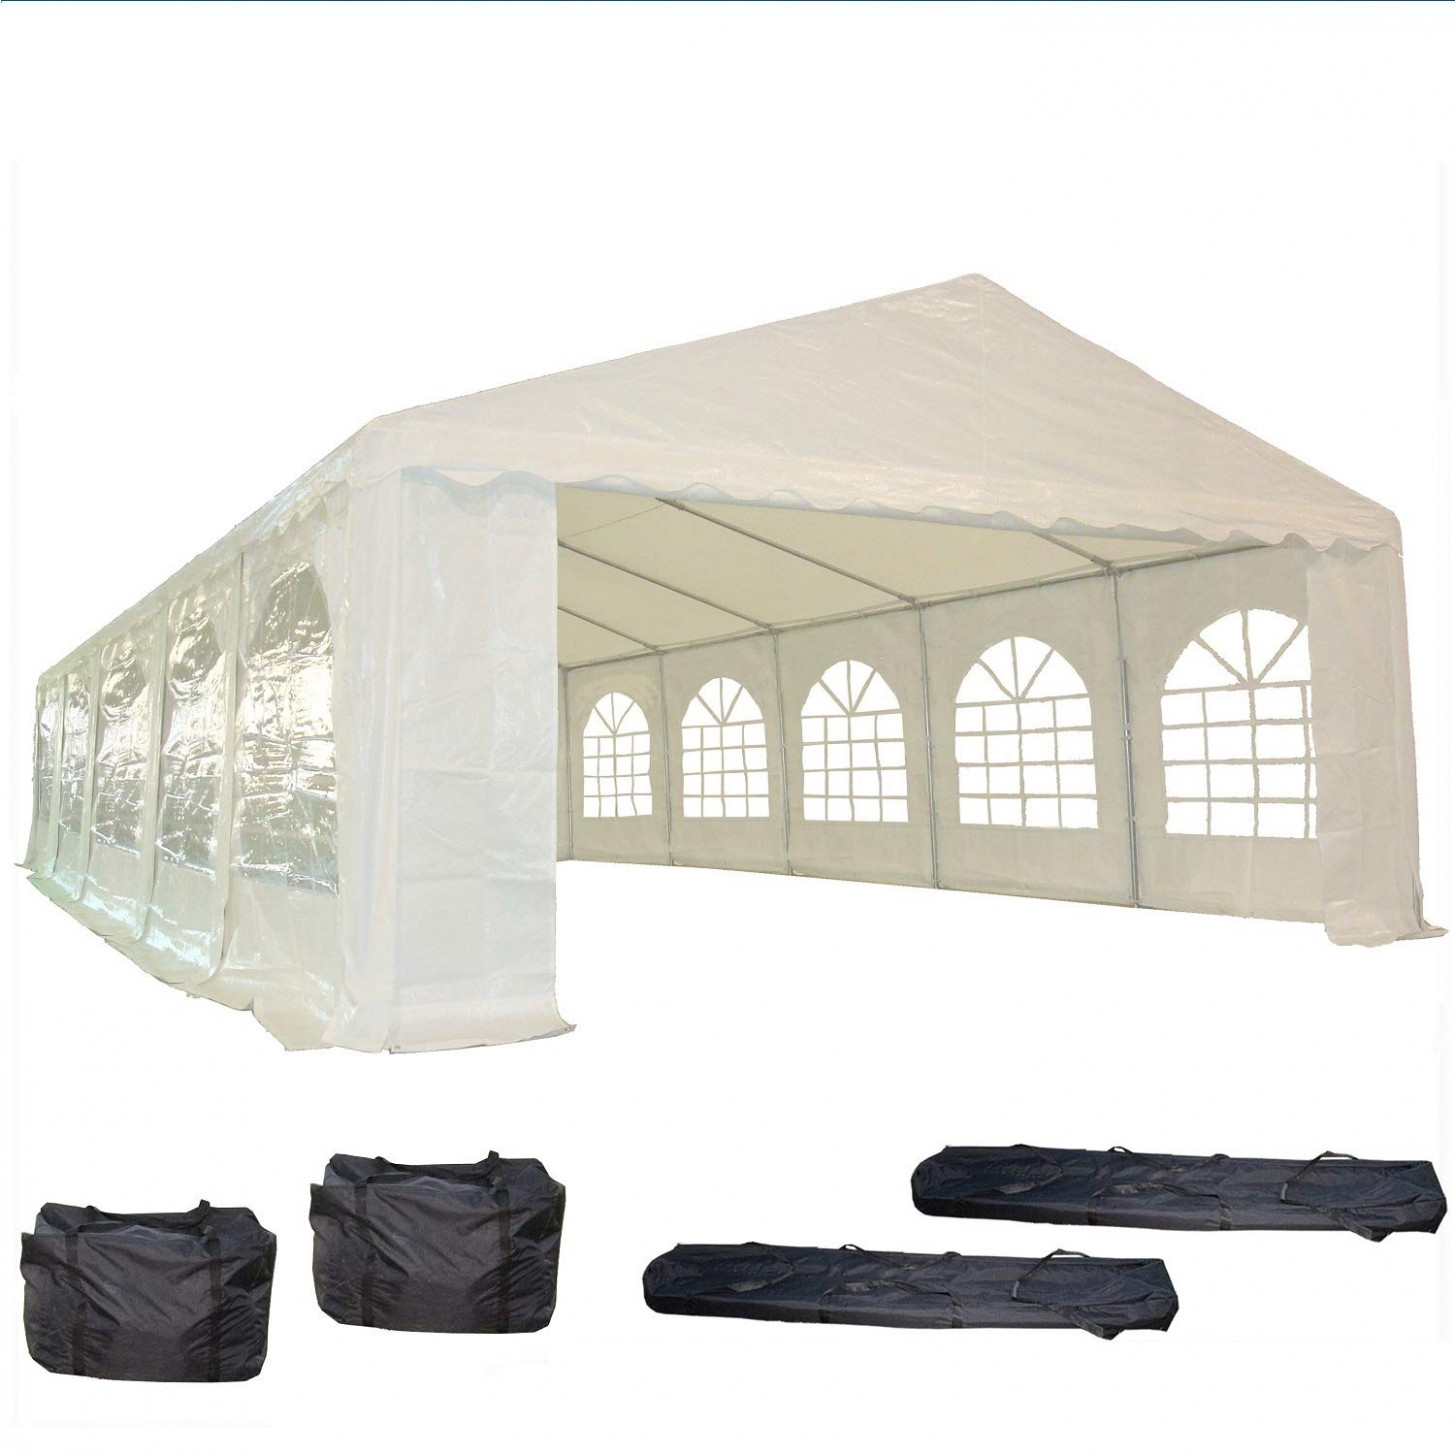 12'x12' PE Party Tent White Heavy Duty Wedding Canopy Carport Shelter With Storage Bags By DELTA Canopies Carport Tent Party